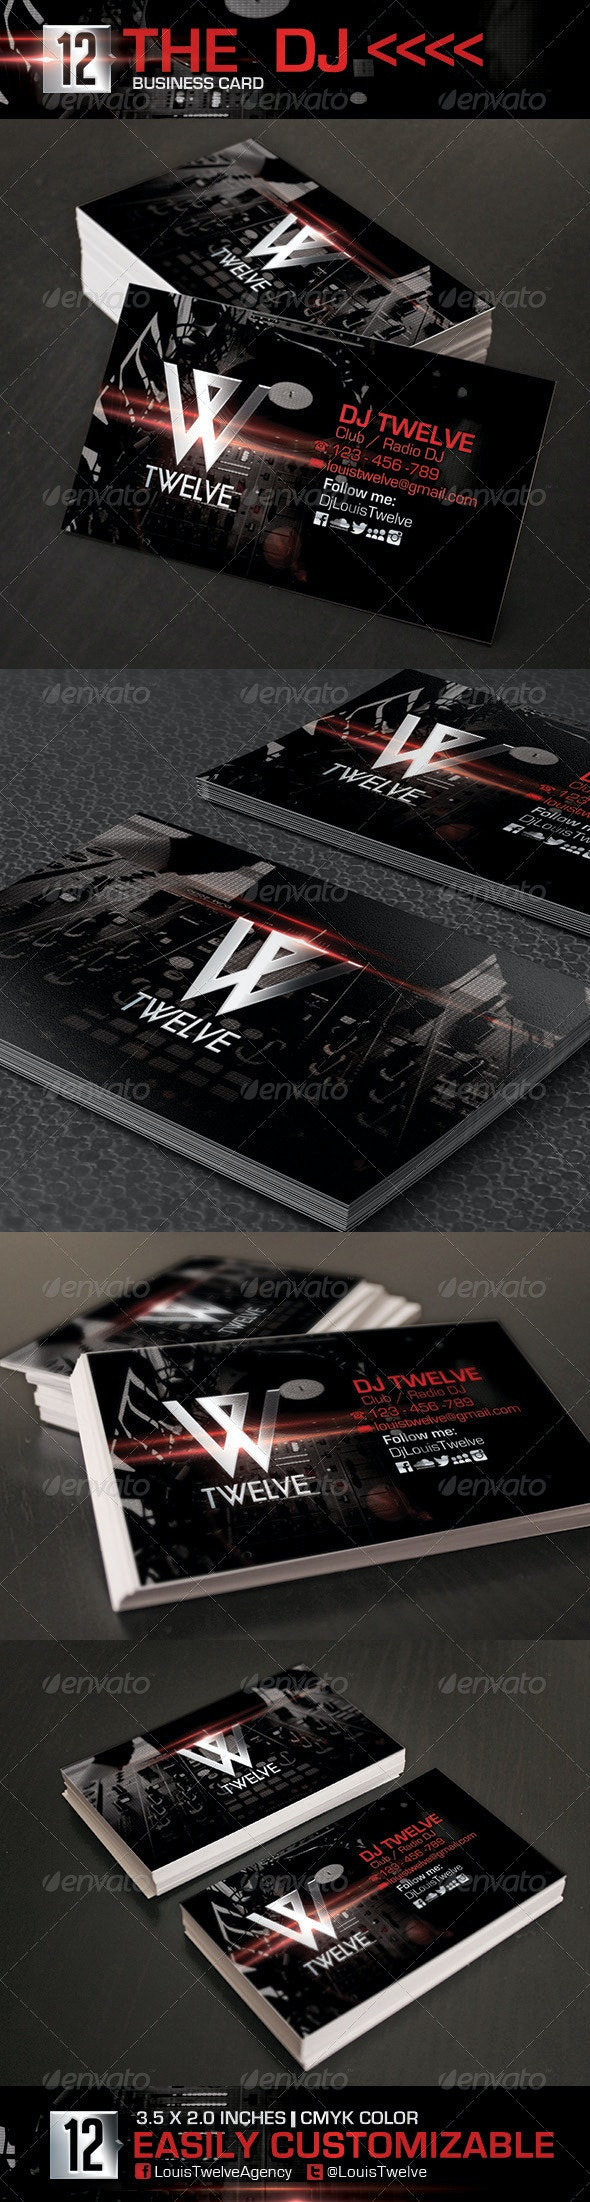 The Dj | Business Card - Industry Specific Business Cards